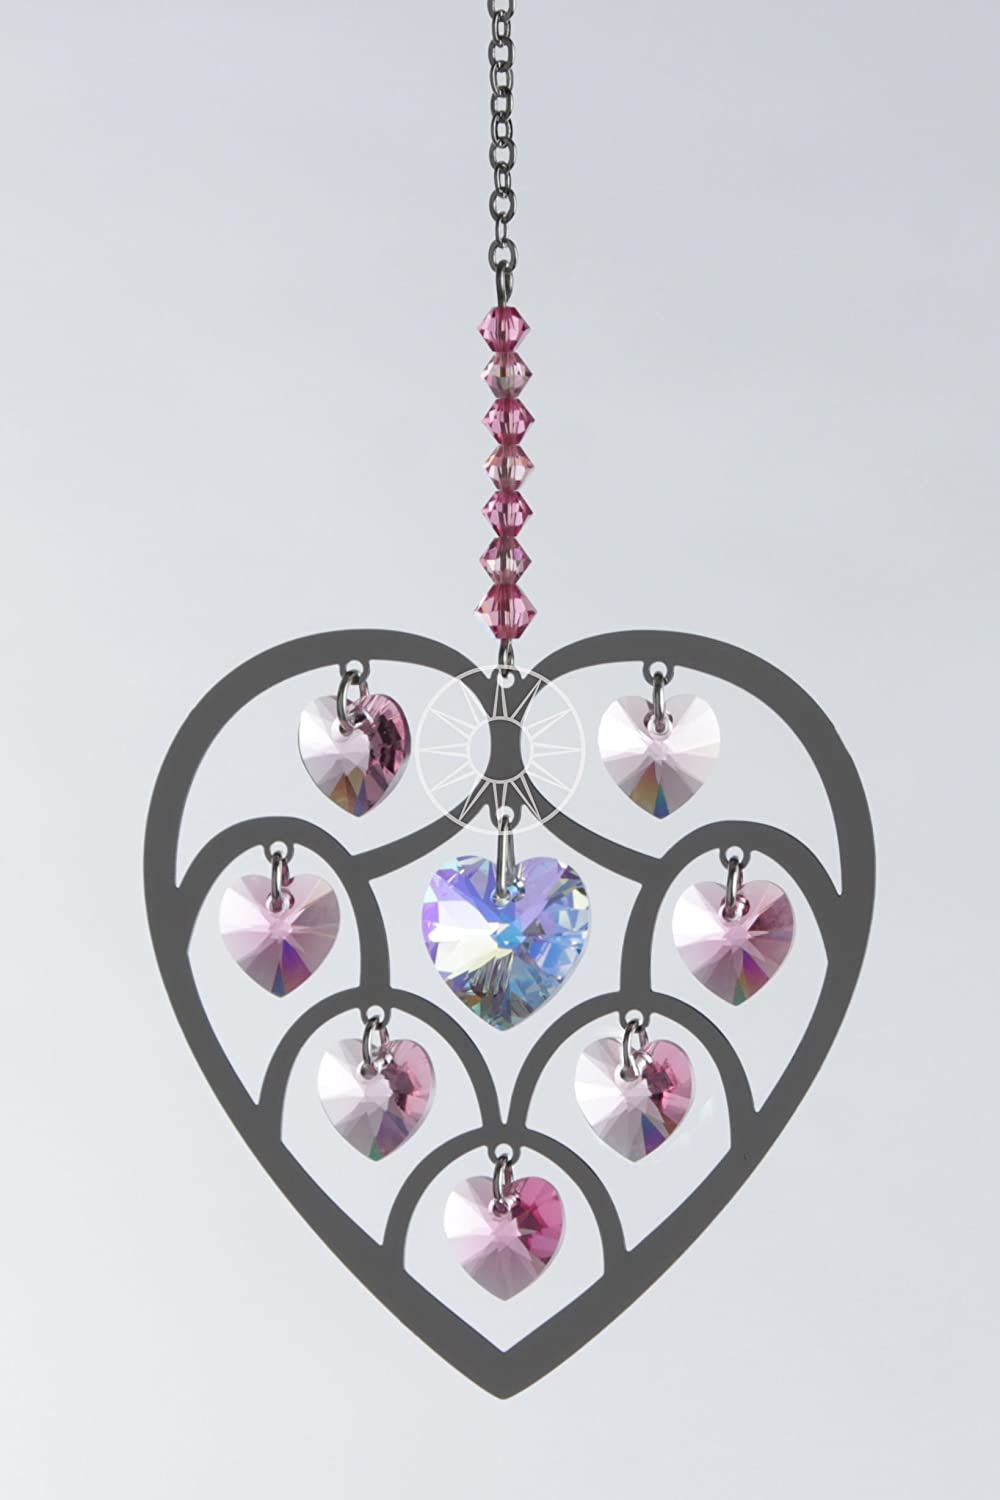 b2815e5b3 Swarovski Heart of Hearts Rose Pink Crystal Brass Hanging Rainbow Suncatcher /Rainbow Maker: Amazon.co.uk: Kitchen & Home